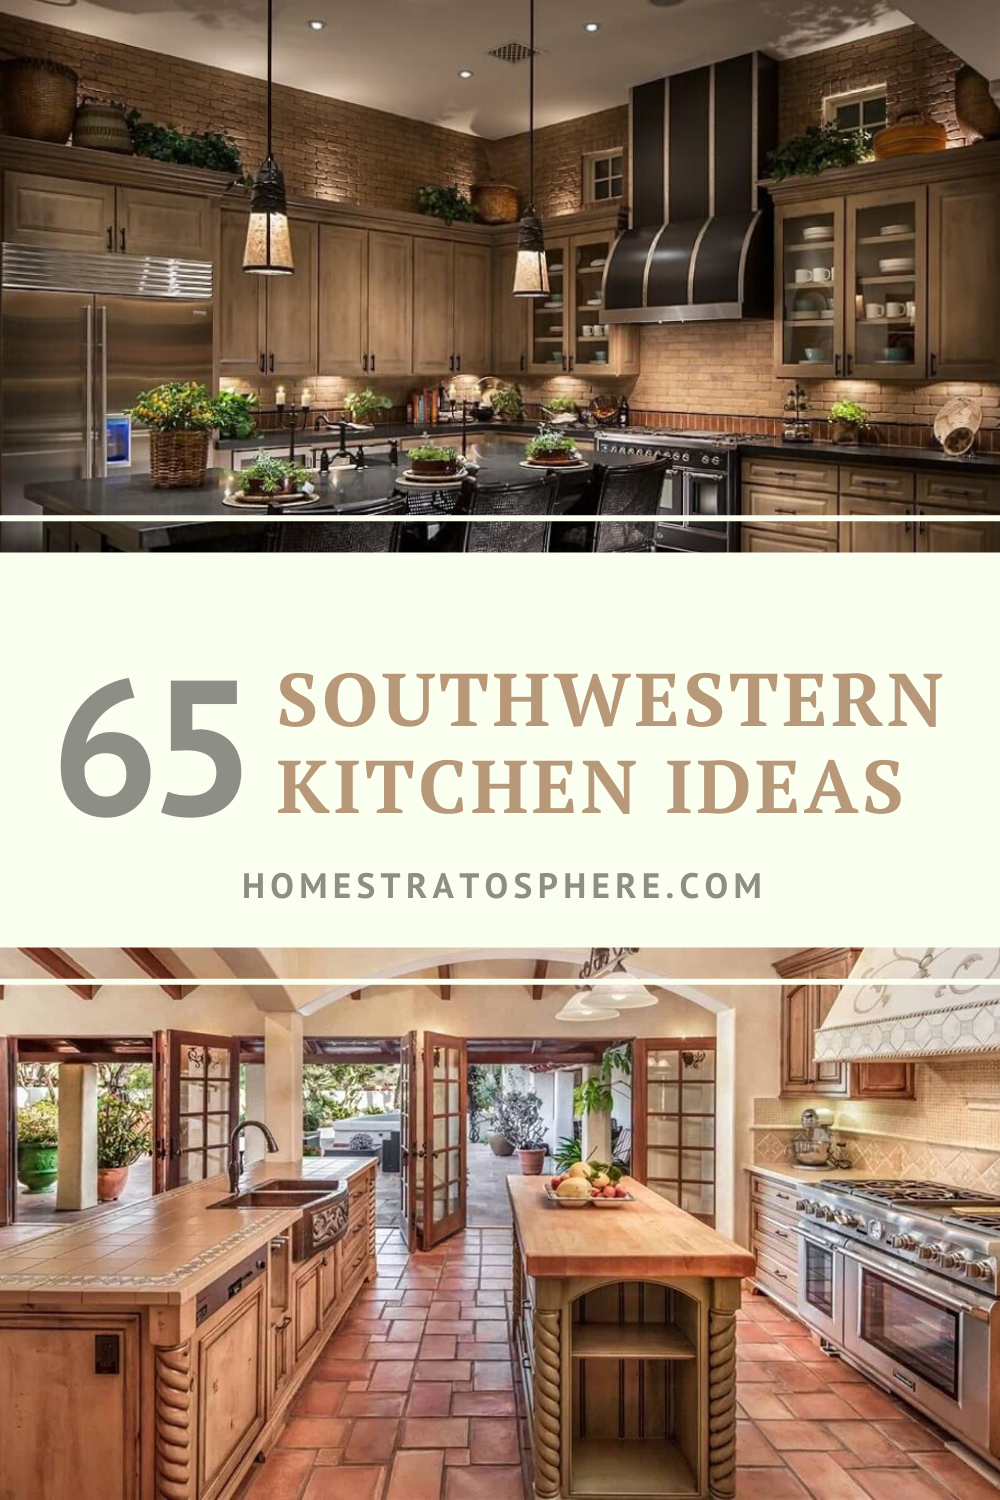 12 Southwestern Kitchen Ideas (Photos) in 12  Kitchen design